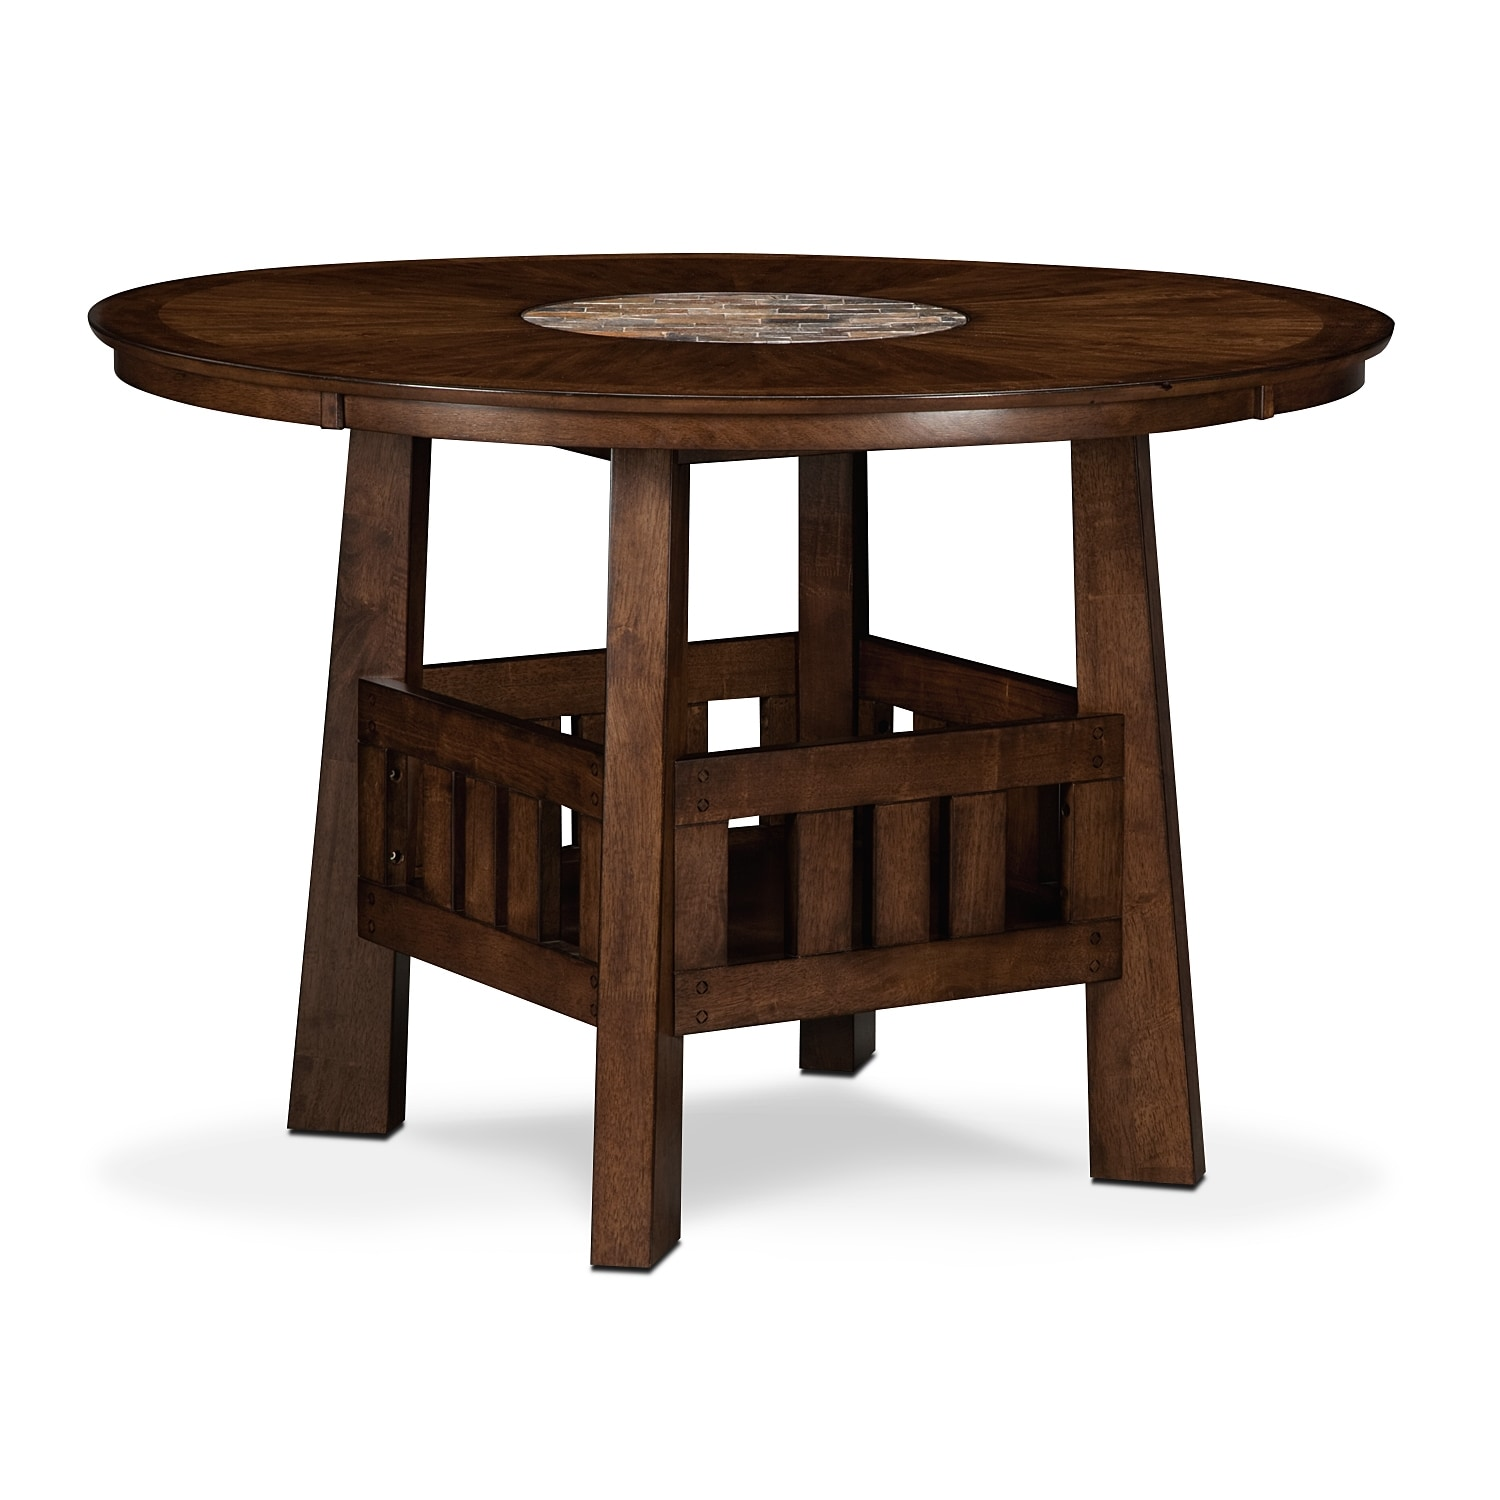 Dining Room Furniture - Harbor Pointe Counter-Height Table